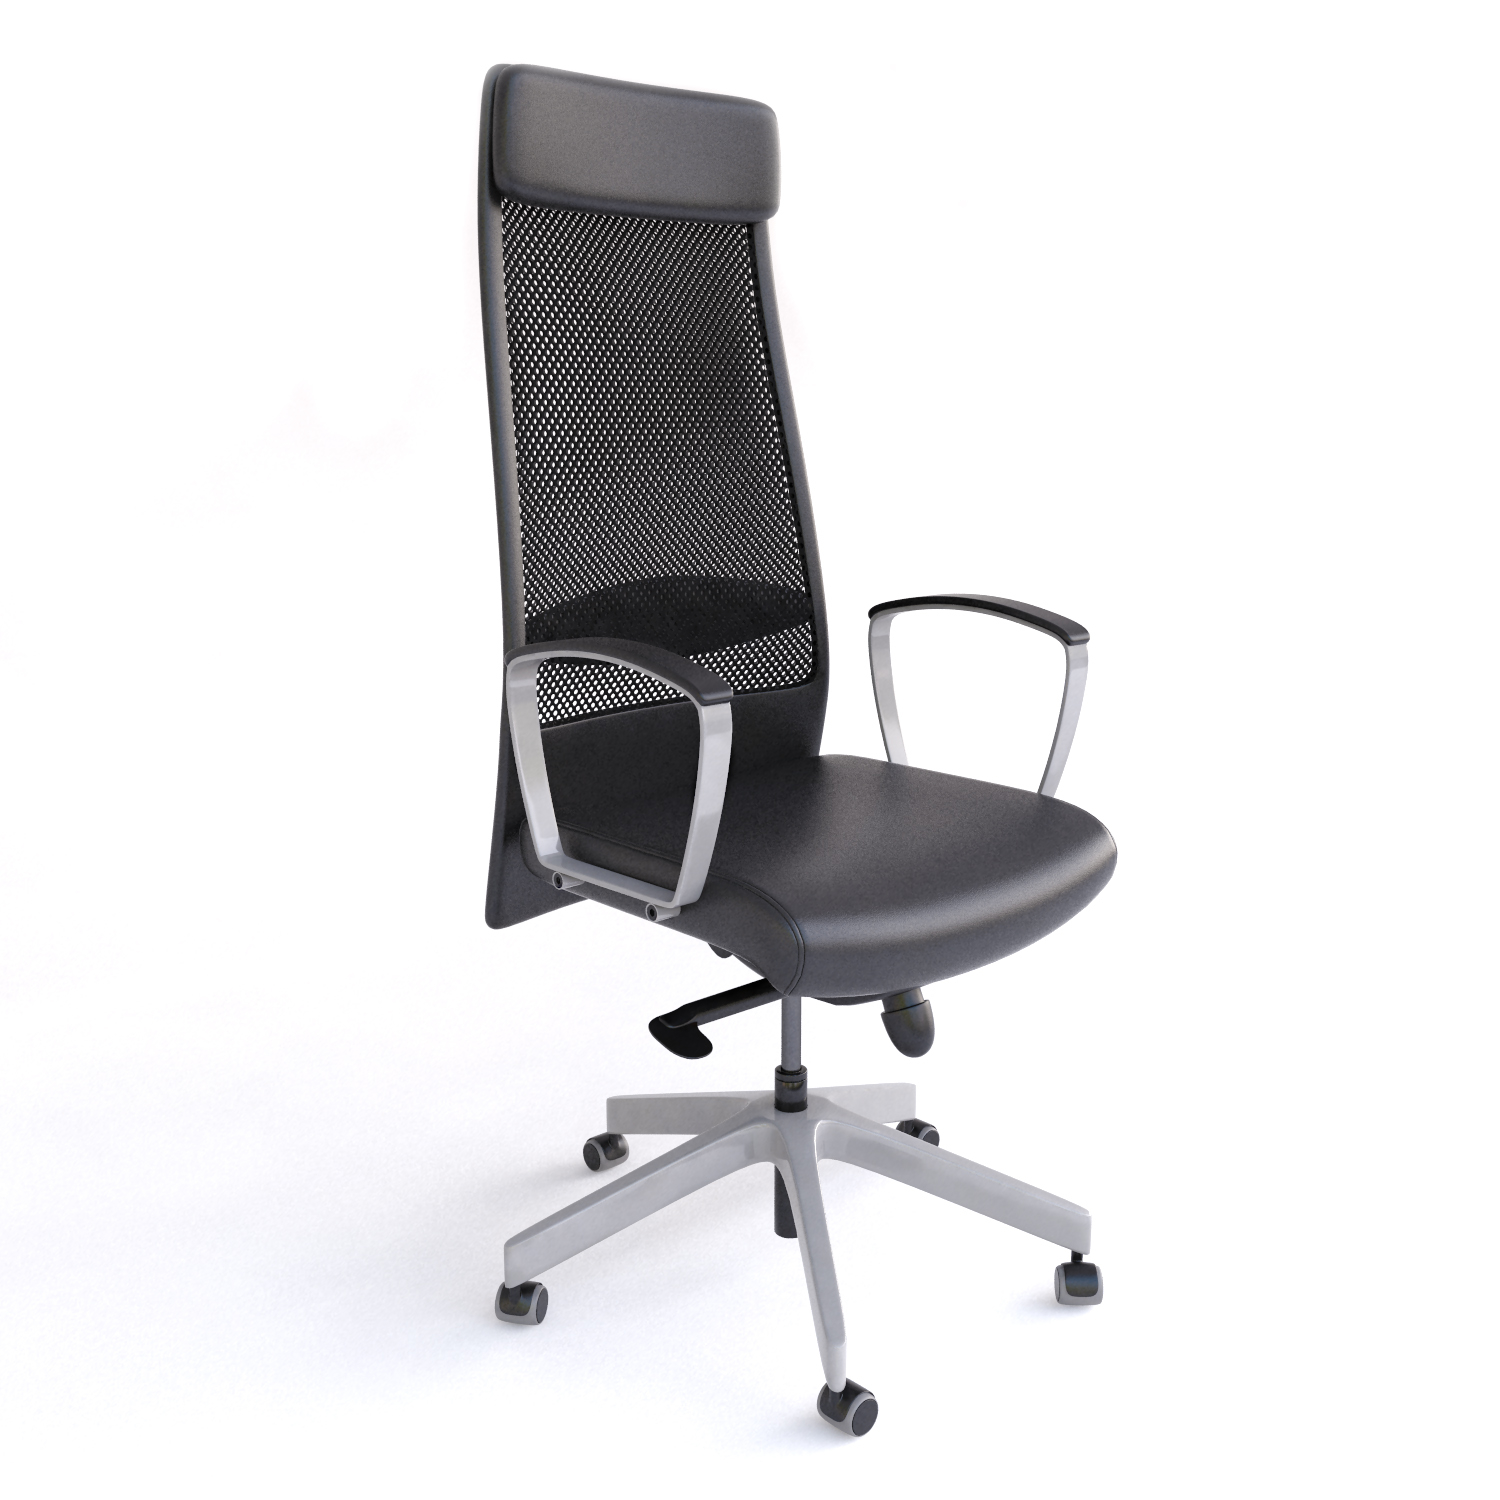 Incredible Markus Office Chair Bralicious Painted Fabric Chair Ideas Braliciousco